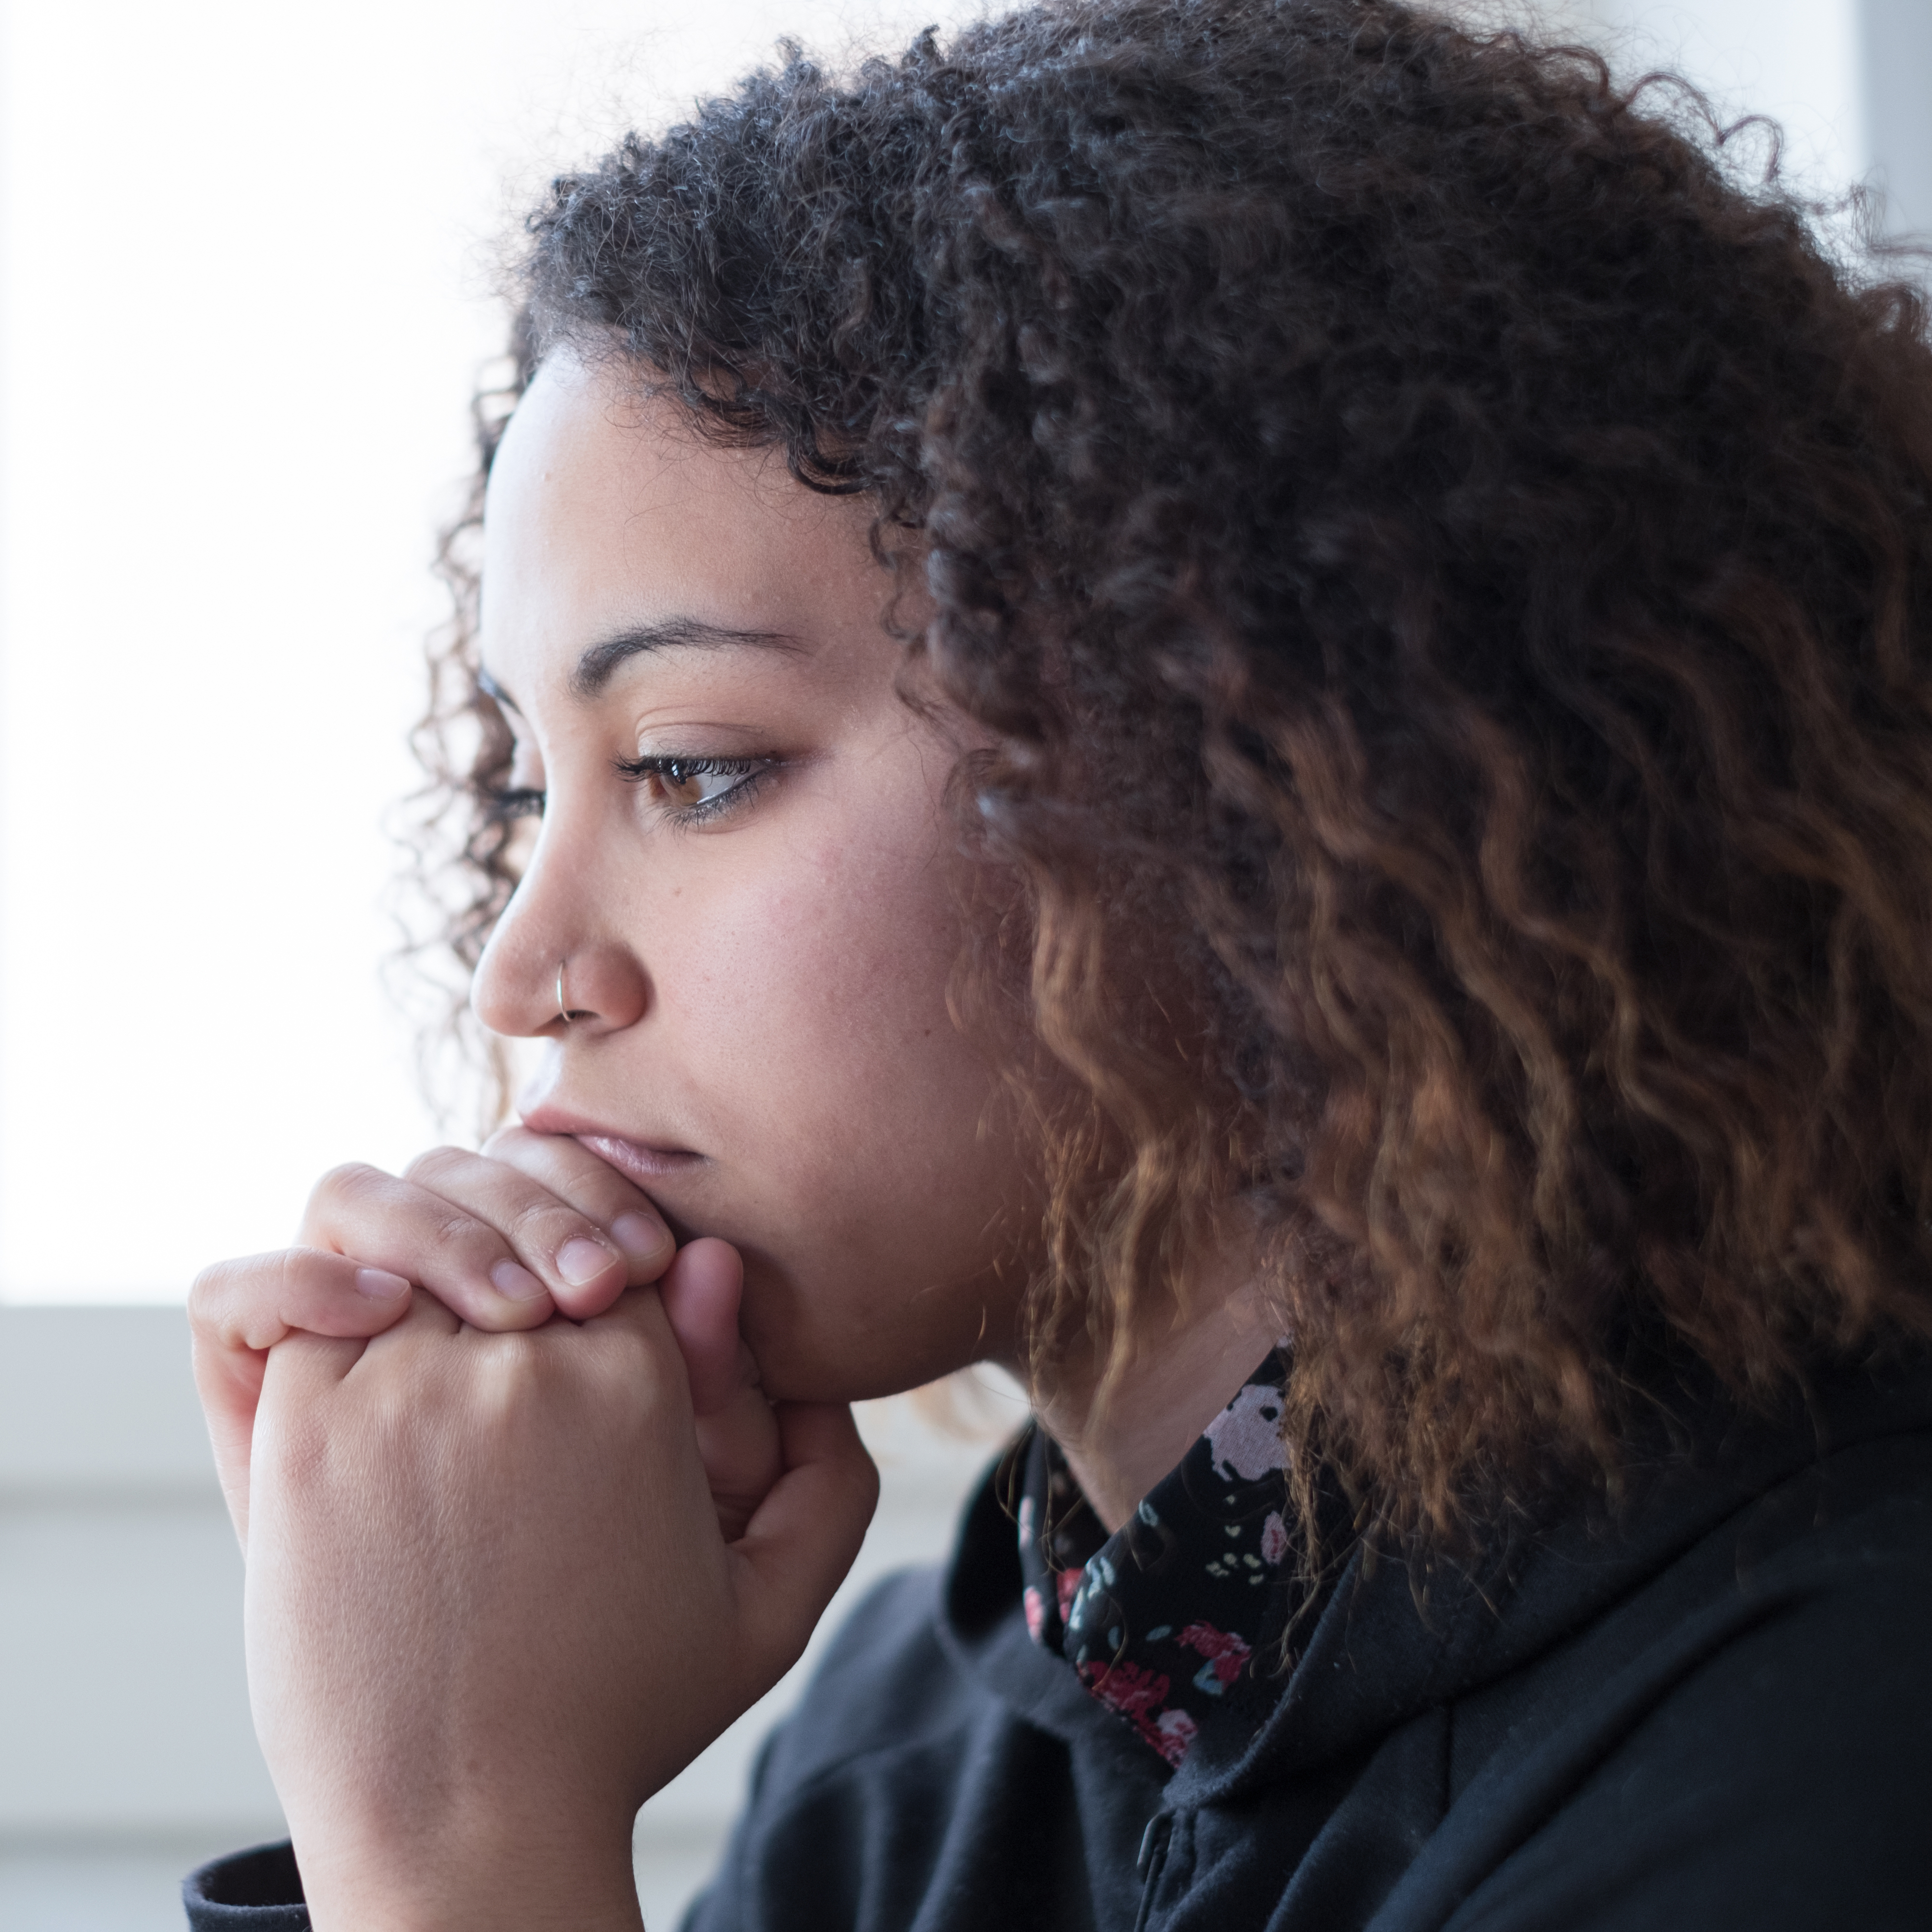 a profile close-up of a young woman, staring into space and sad and looking lost in thought, with her chin in her hands